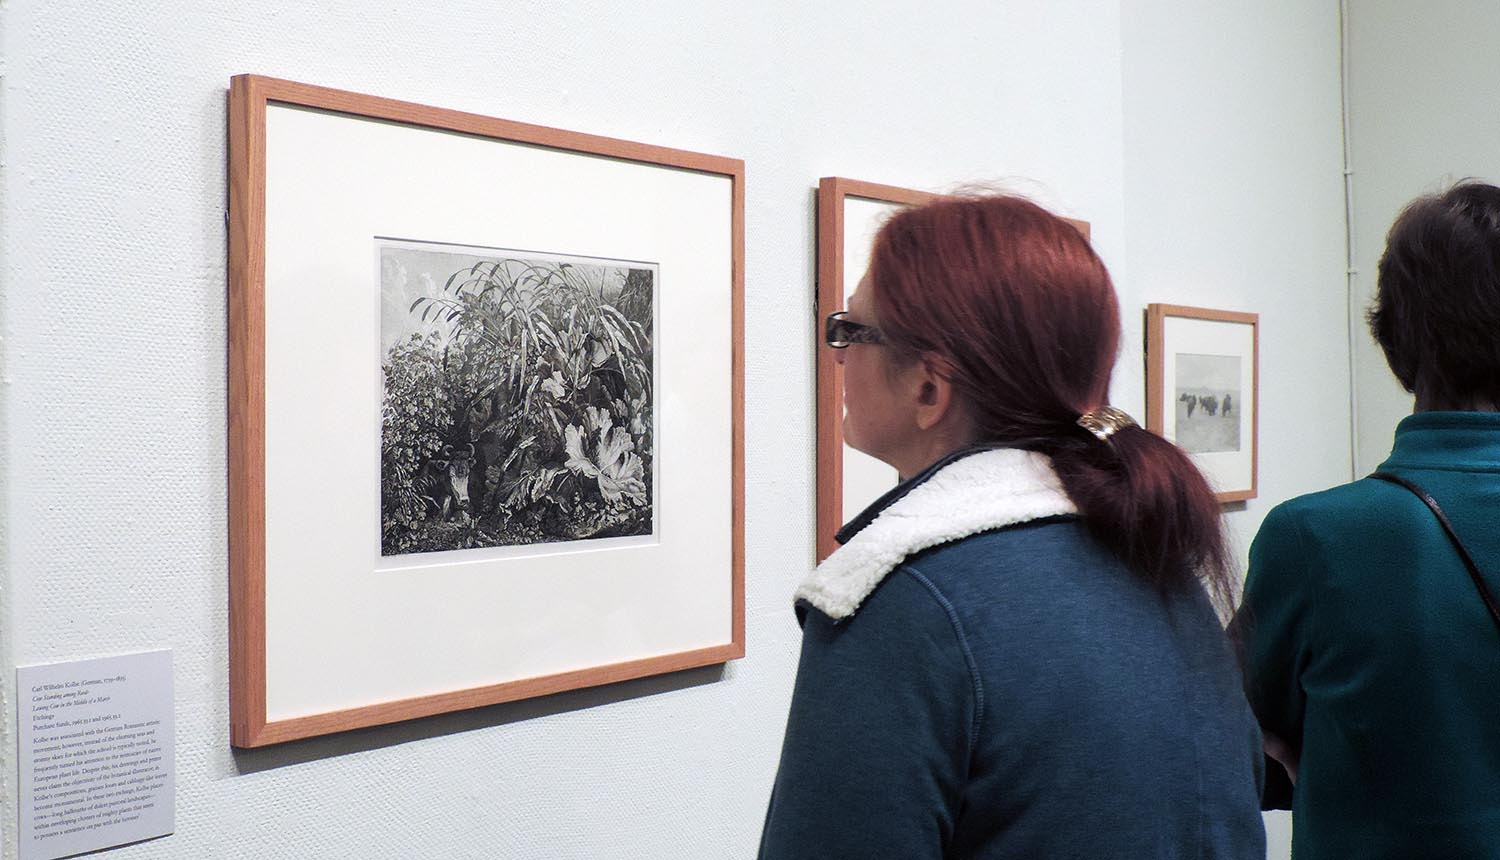 The exhibit encourages visitors to consider the various ways in which humans see and interpret animals, who are not able to represent themselves through art.